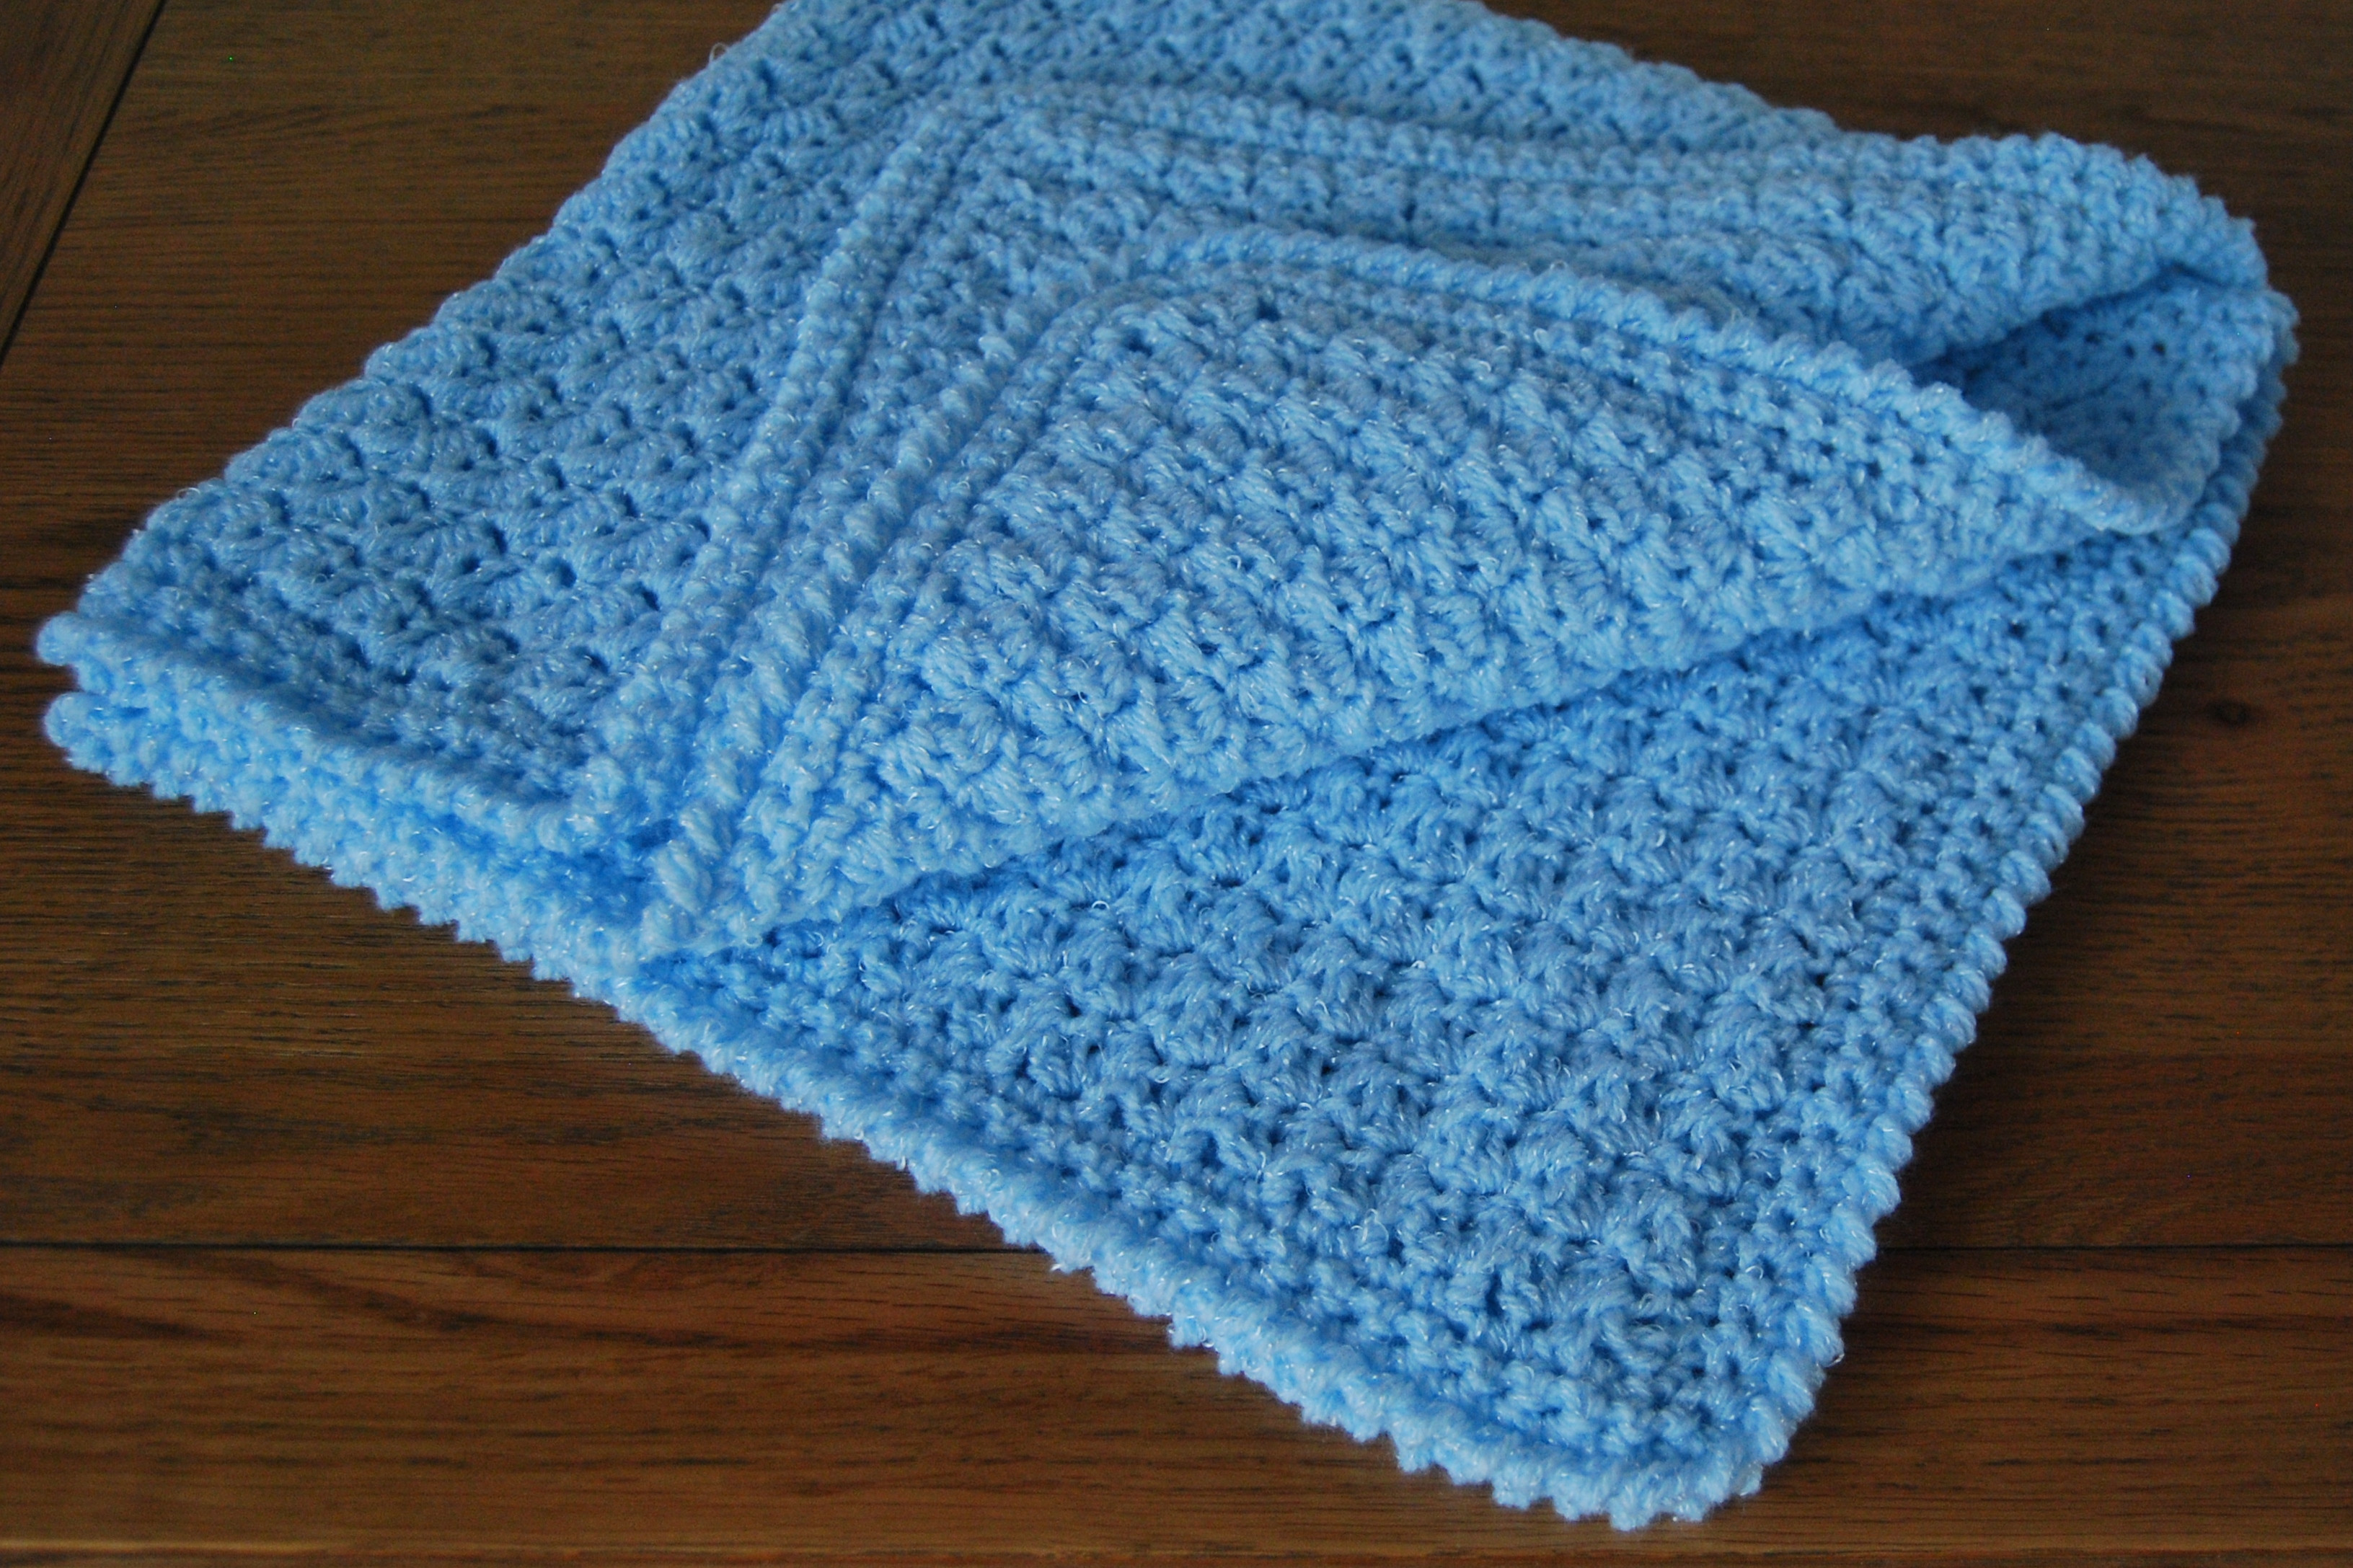 Baby Boy Crochet Blanket Patterns New Beautiful Baby Boy Blanket Crochet Pattern for Pram Of Baby Boy Crochet Blanket Patterns Lovely My Crochet Part 395